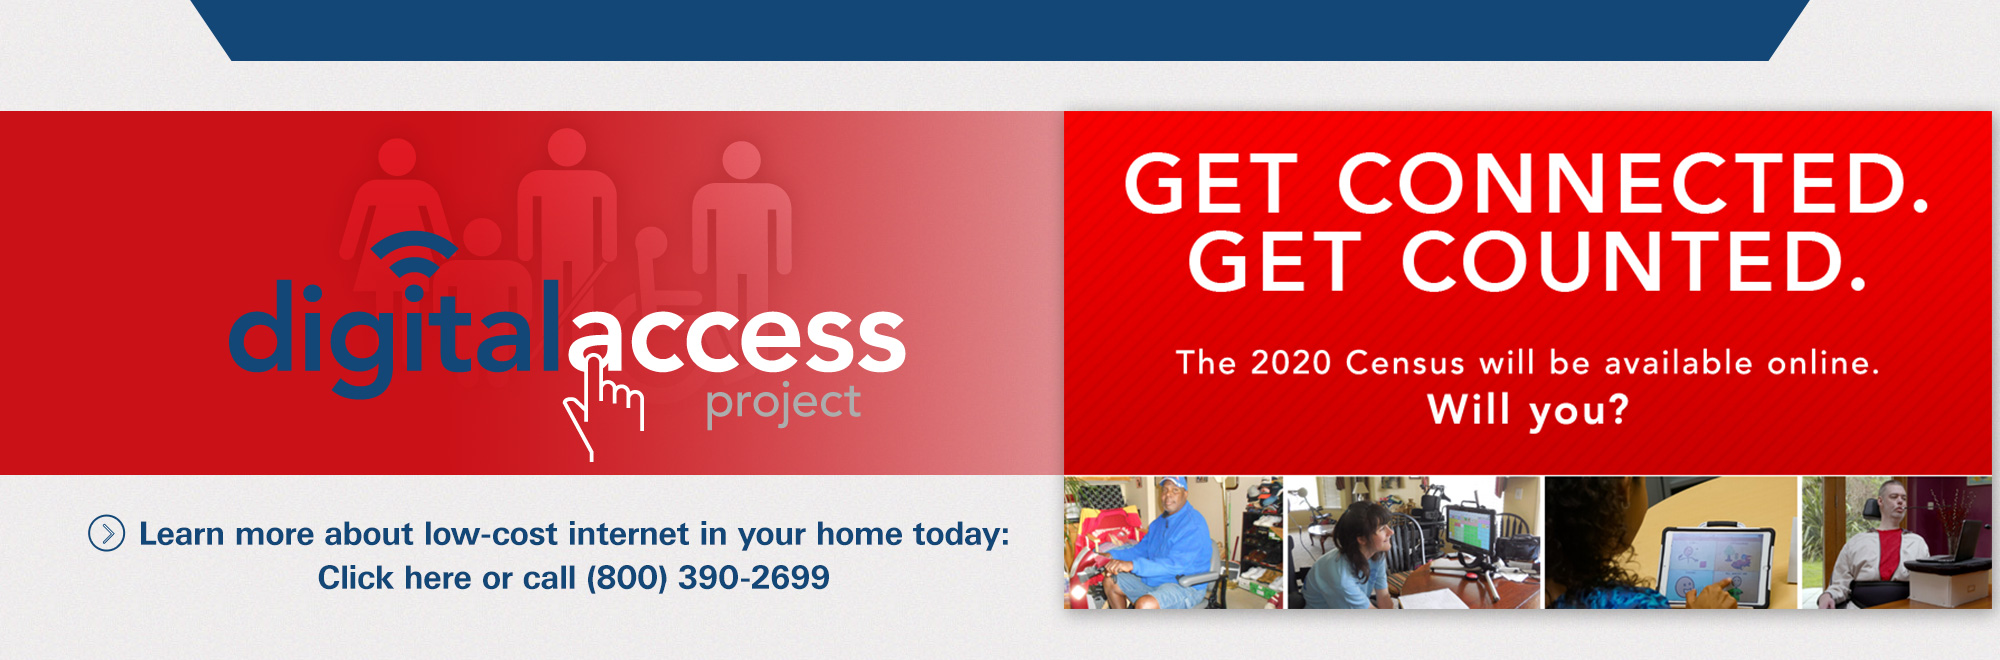 Banner of Digital Access Project. GET CONNECTED. GET COUNTED. The 2020 Census will be available online. Will you? Learn more about low-cost internet in your home today: Click or call (800)390-2699.